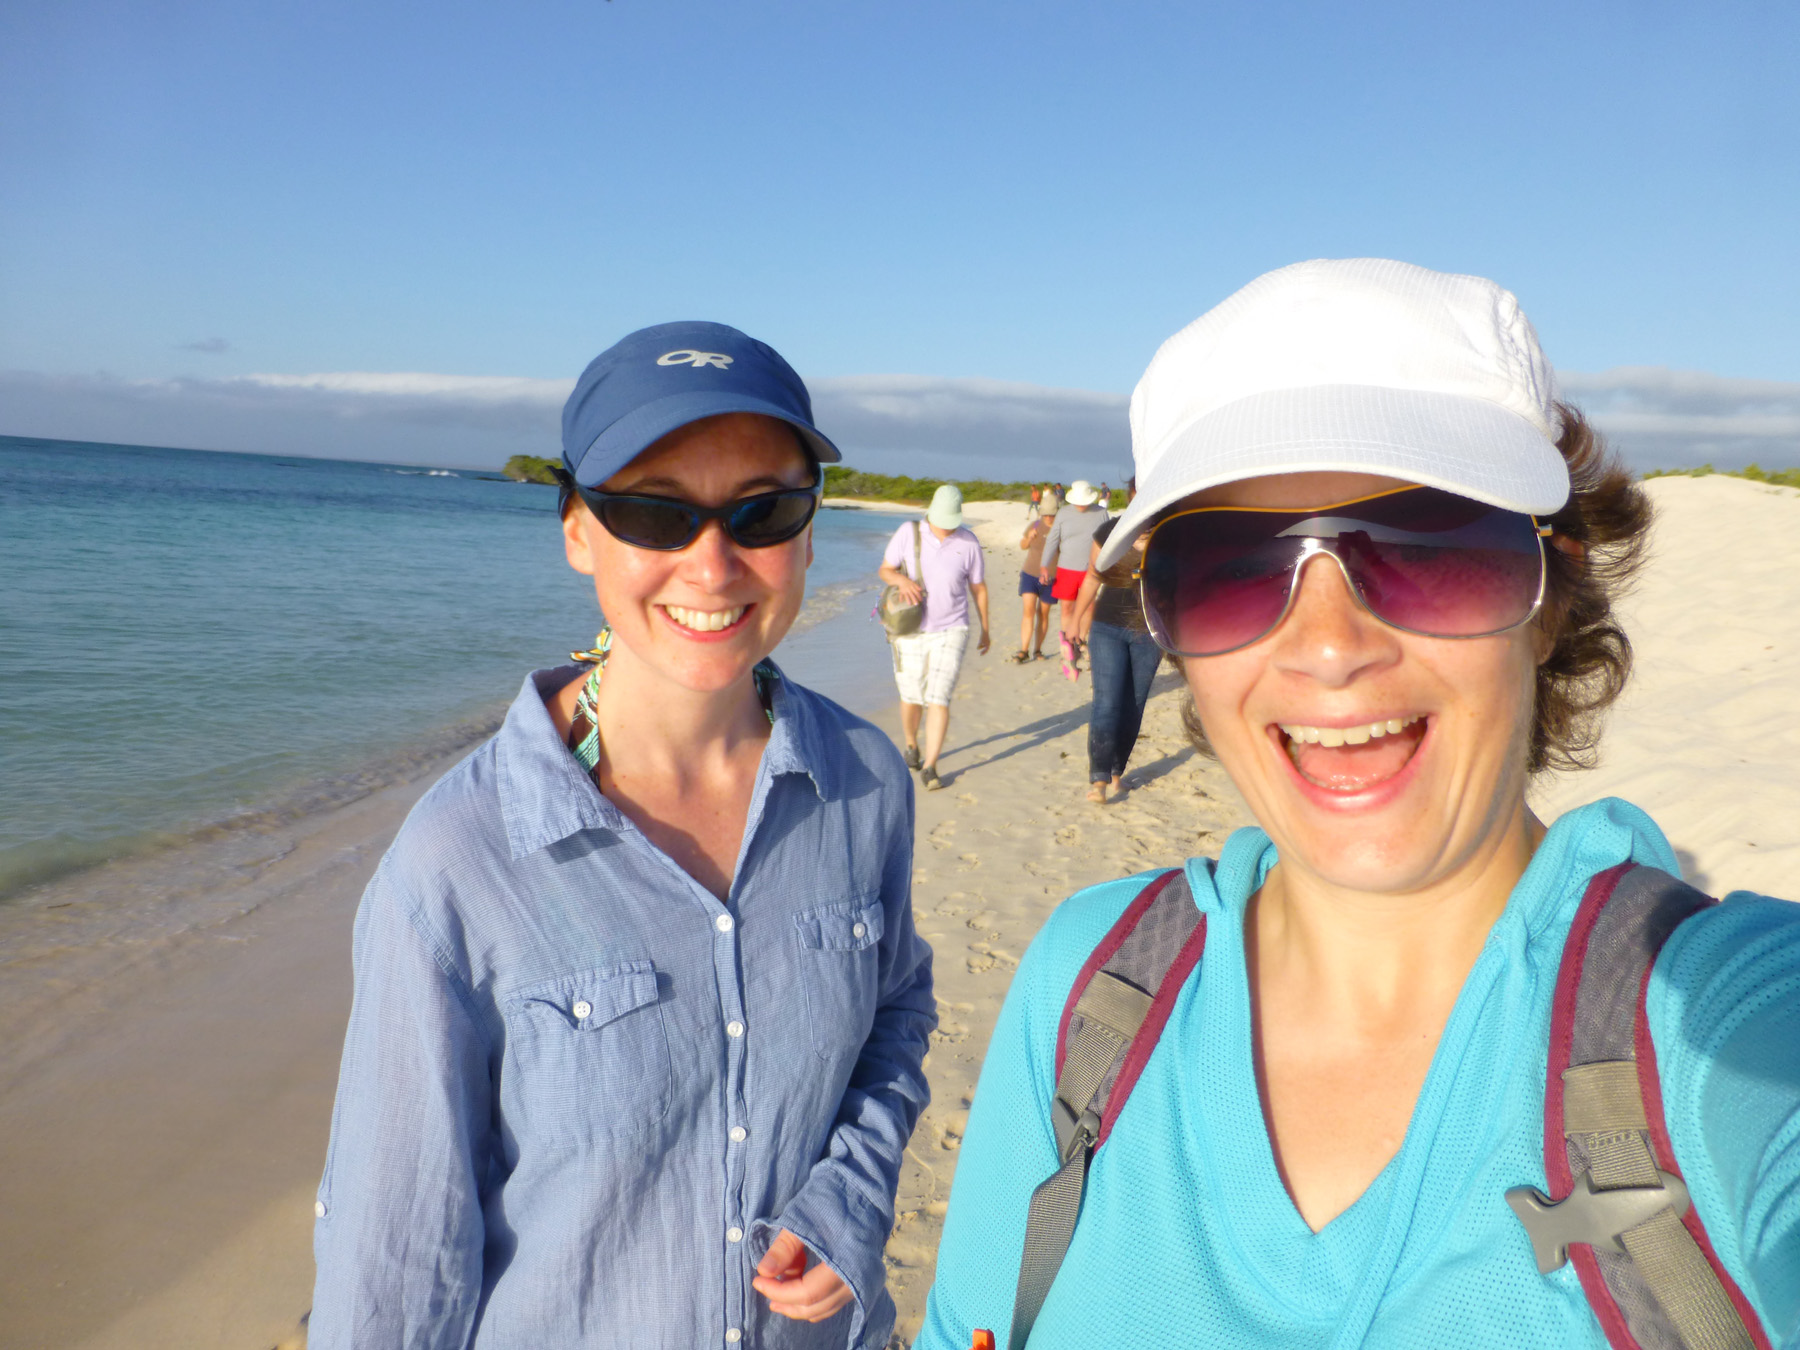 Katie and me enjoying our first exploration of the Galapagos islands.